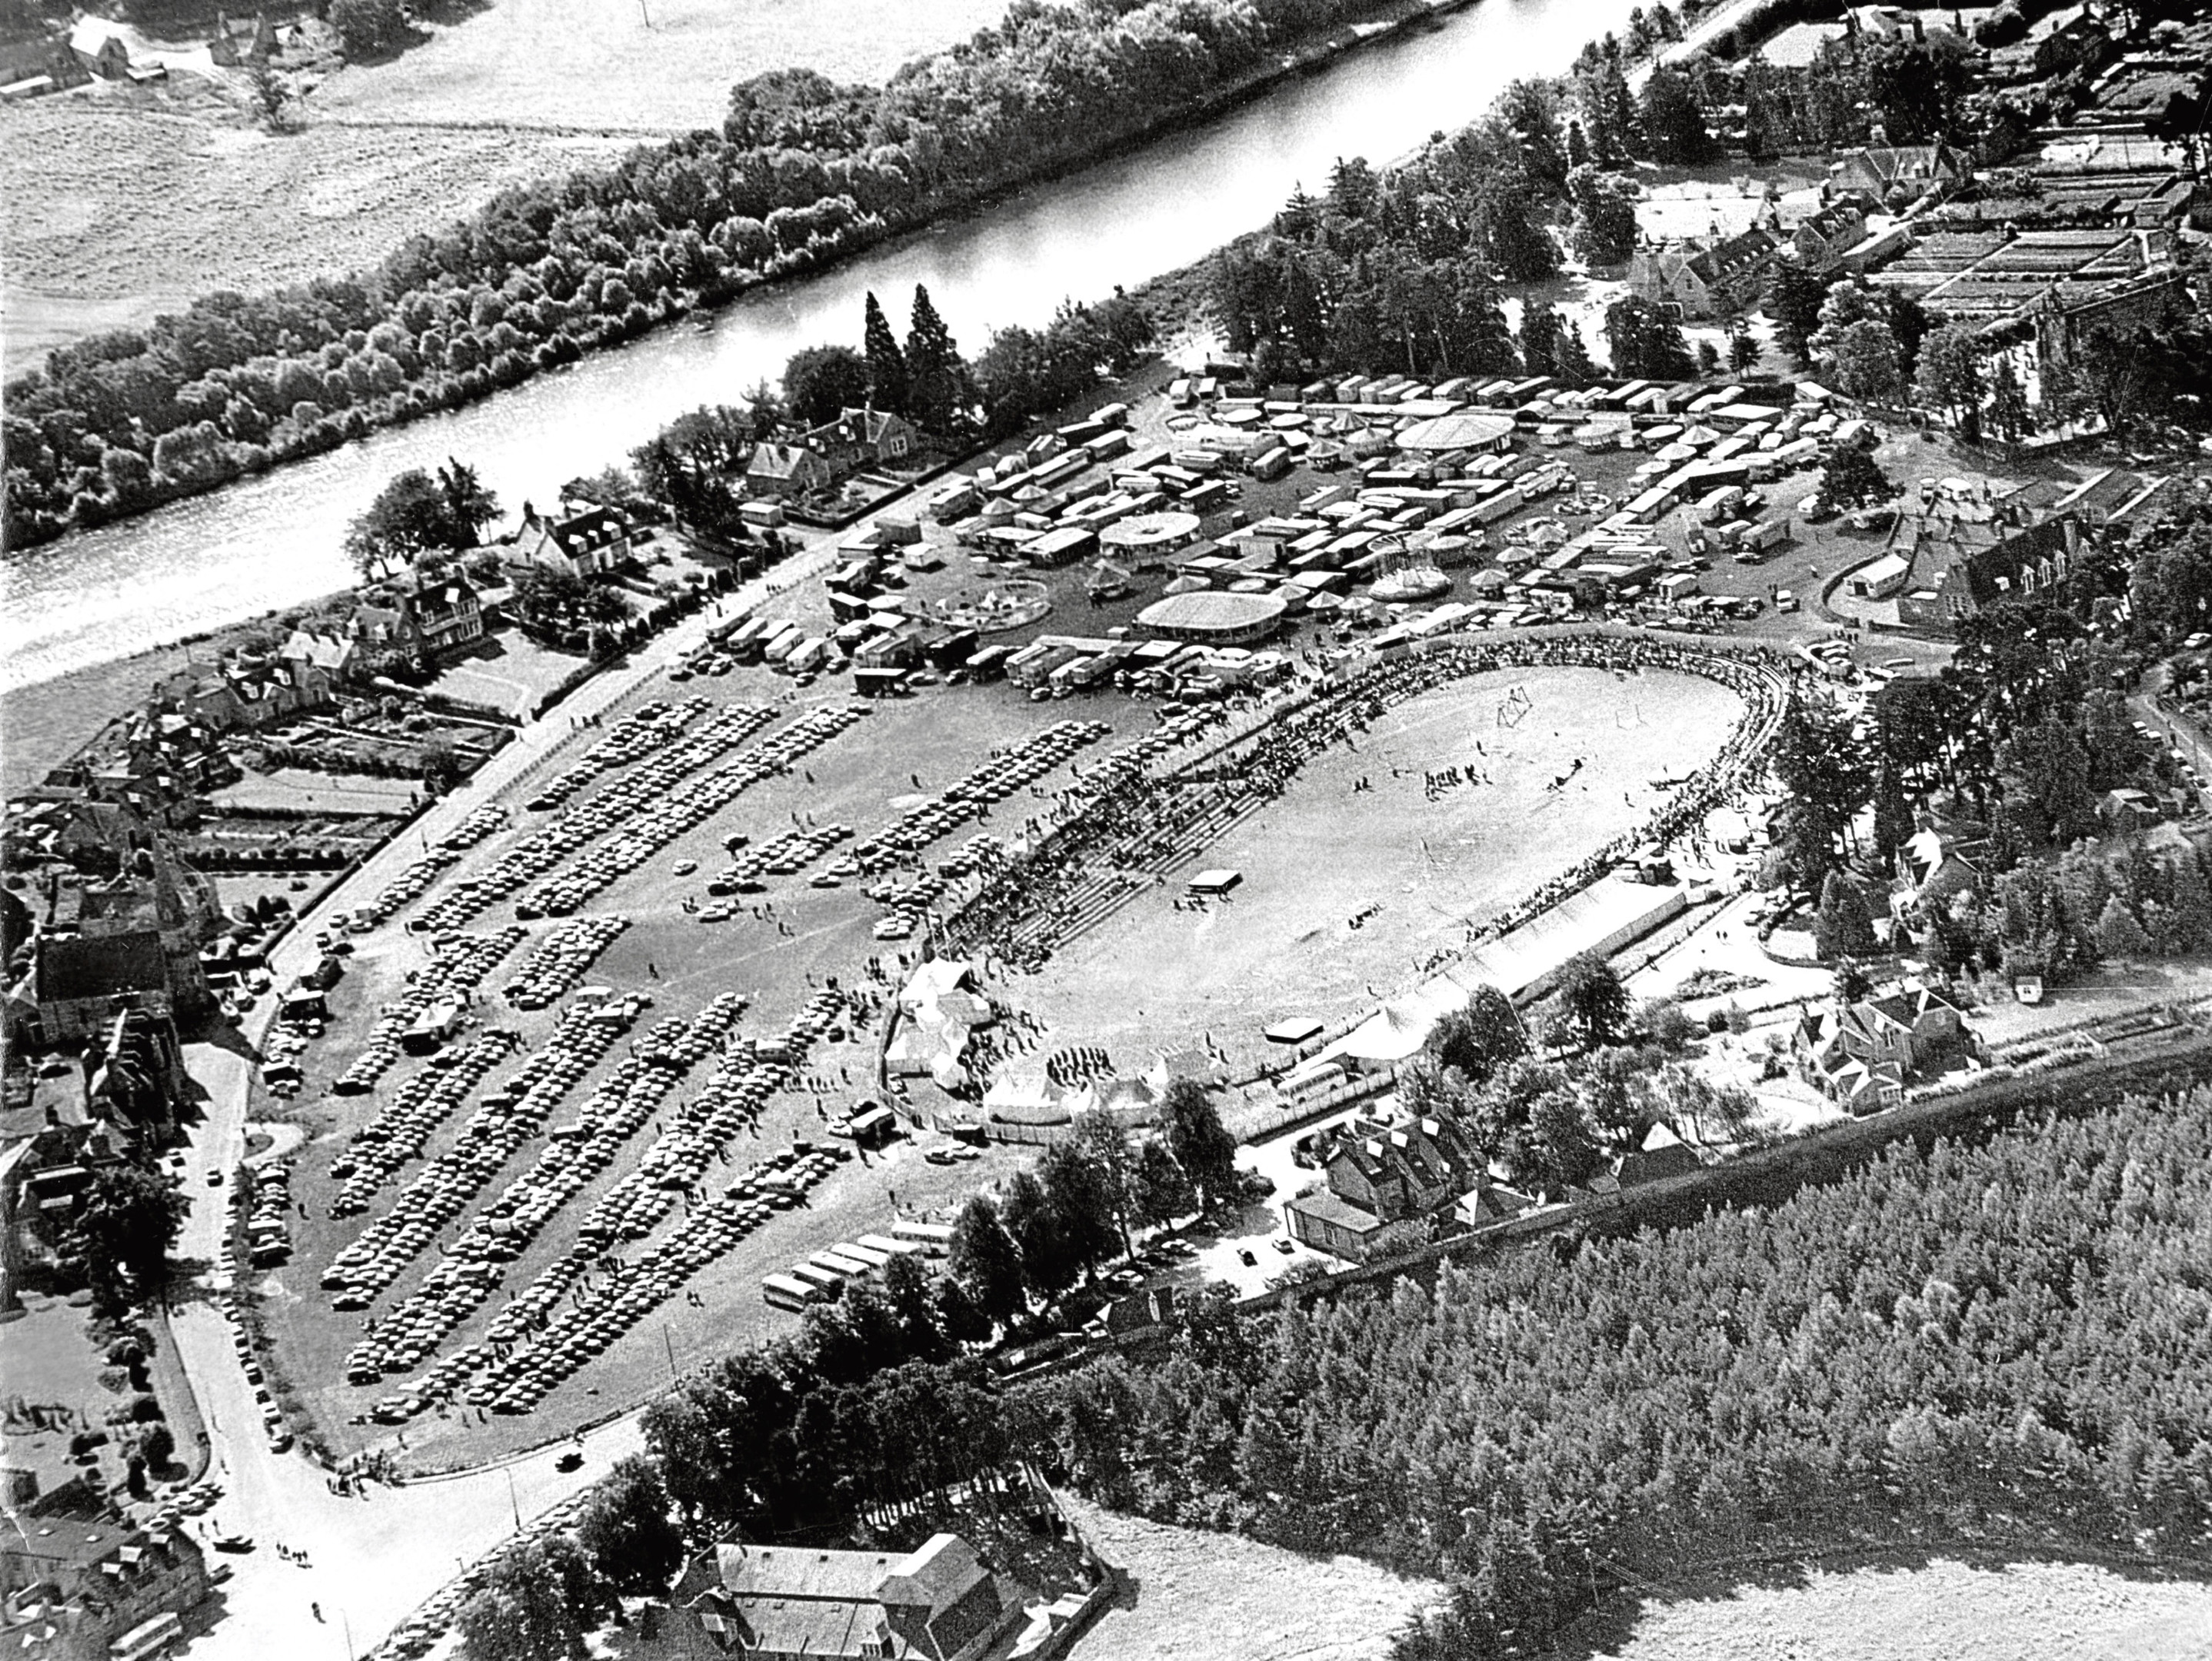 1968: The first aerial view of the Aboyne Games. It was taken by  photographer Jack Cryle.